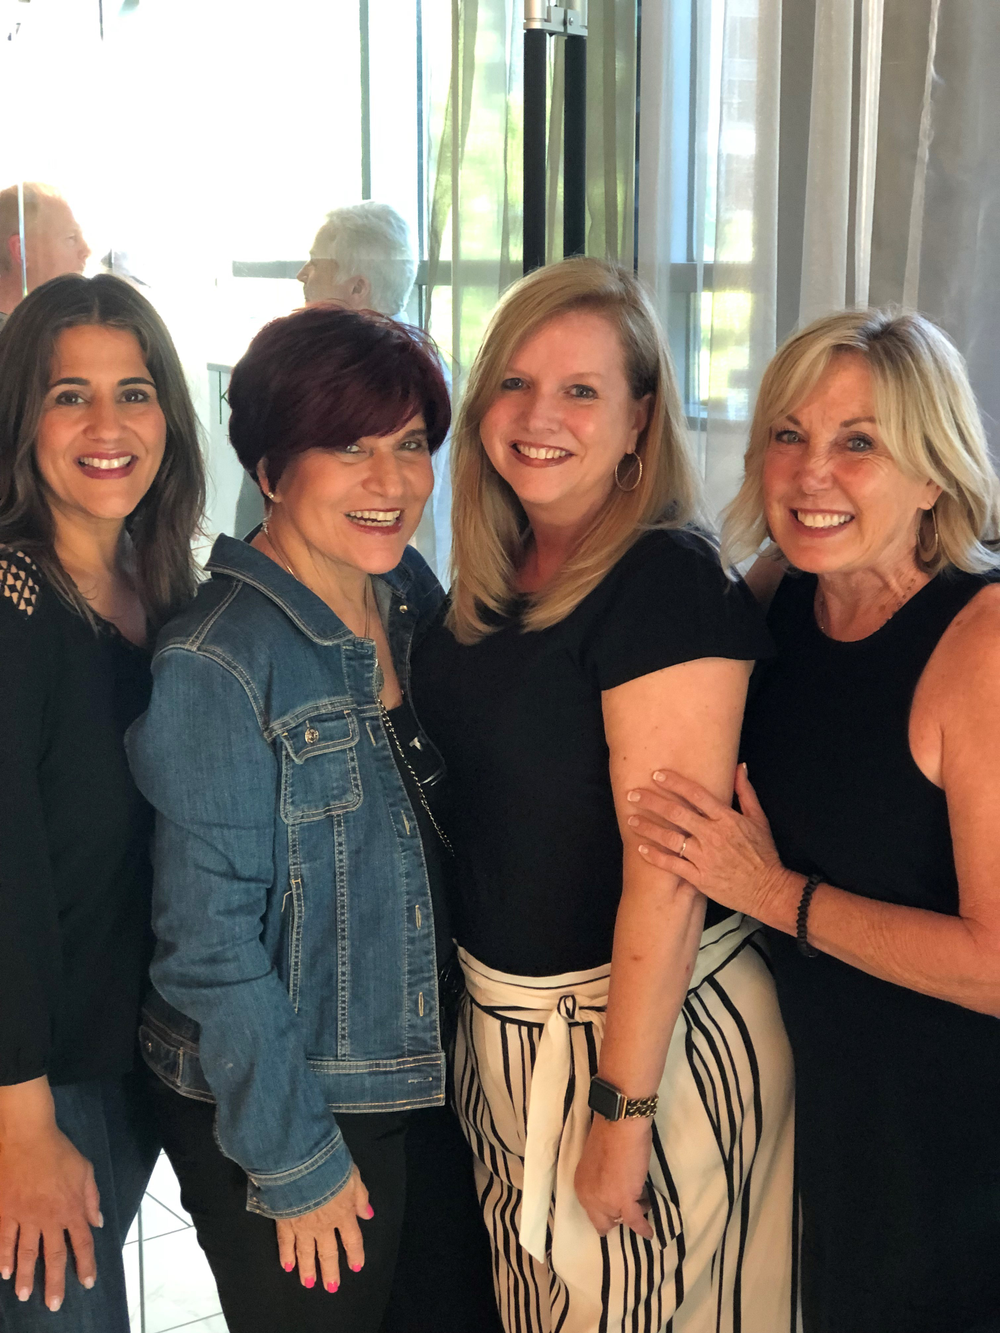 MODERN SALON's Angela Reich, Maggie DeFalco, SALON TODAY Editor-in-Chief Stacey Soble, and Gayle Fulbright